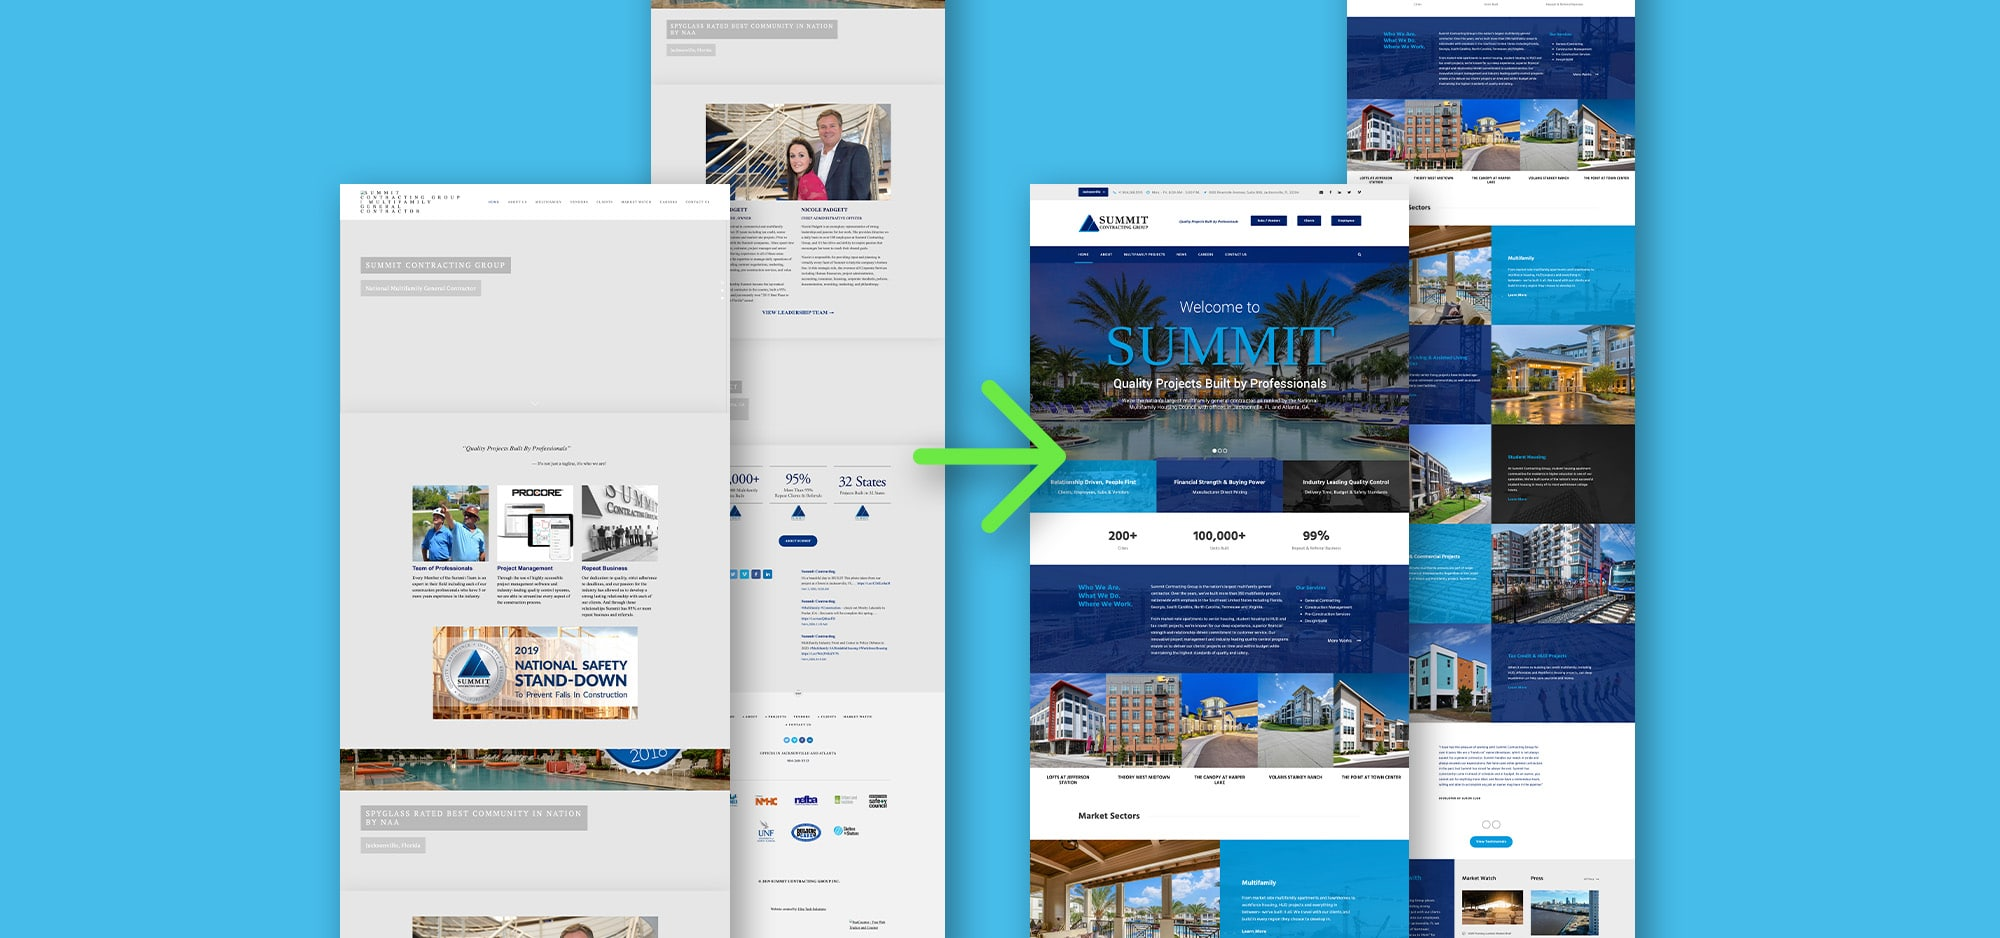 Summit website mockup of homepage and project pages